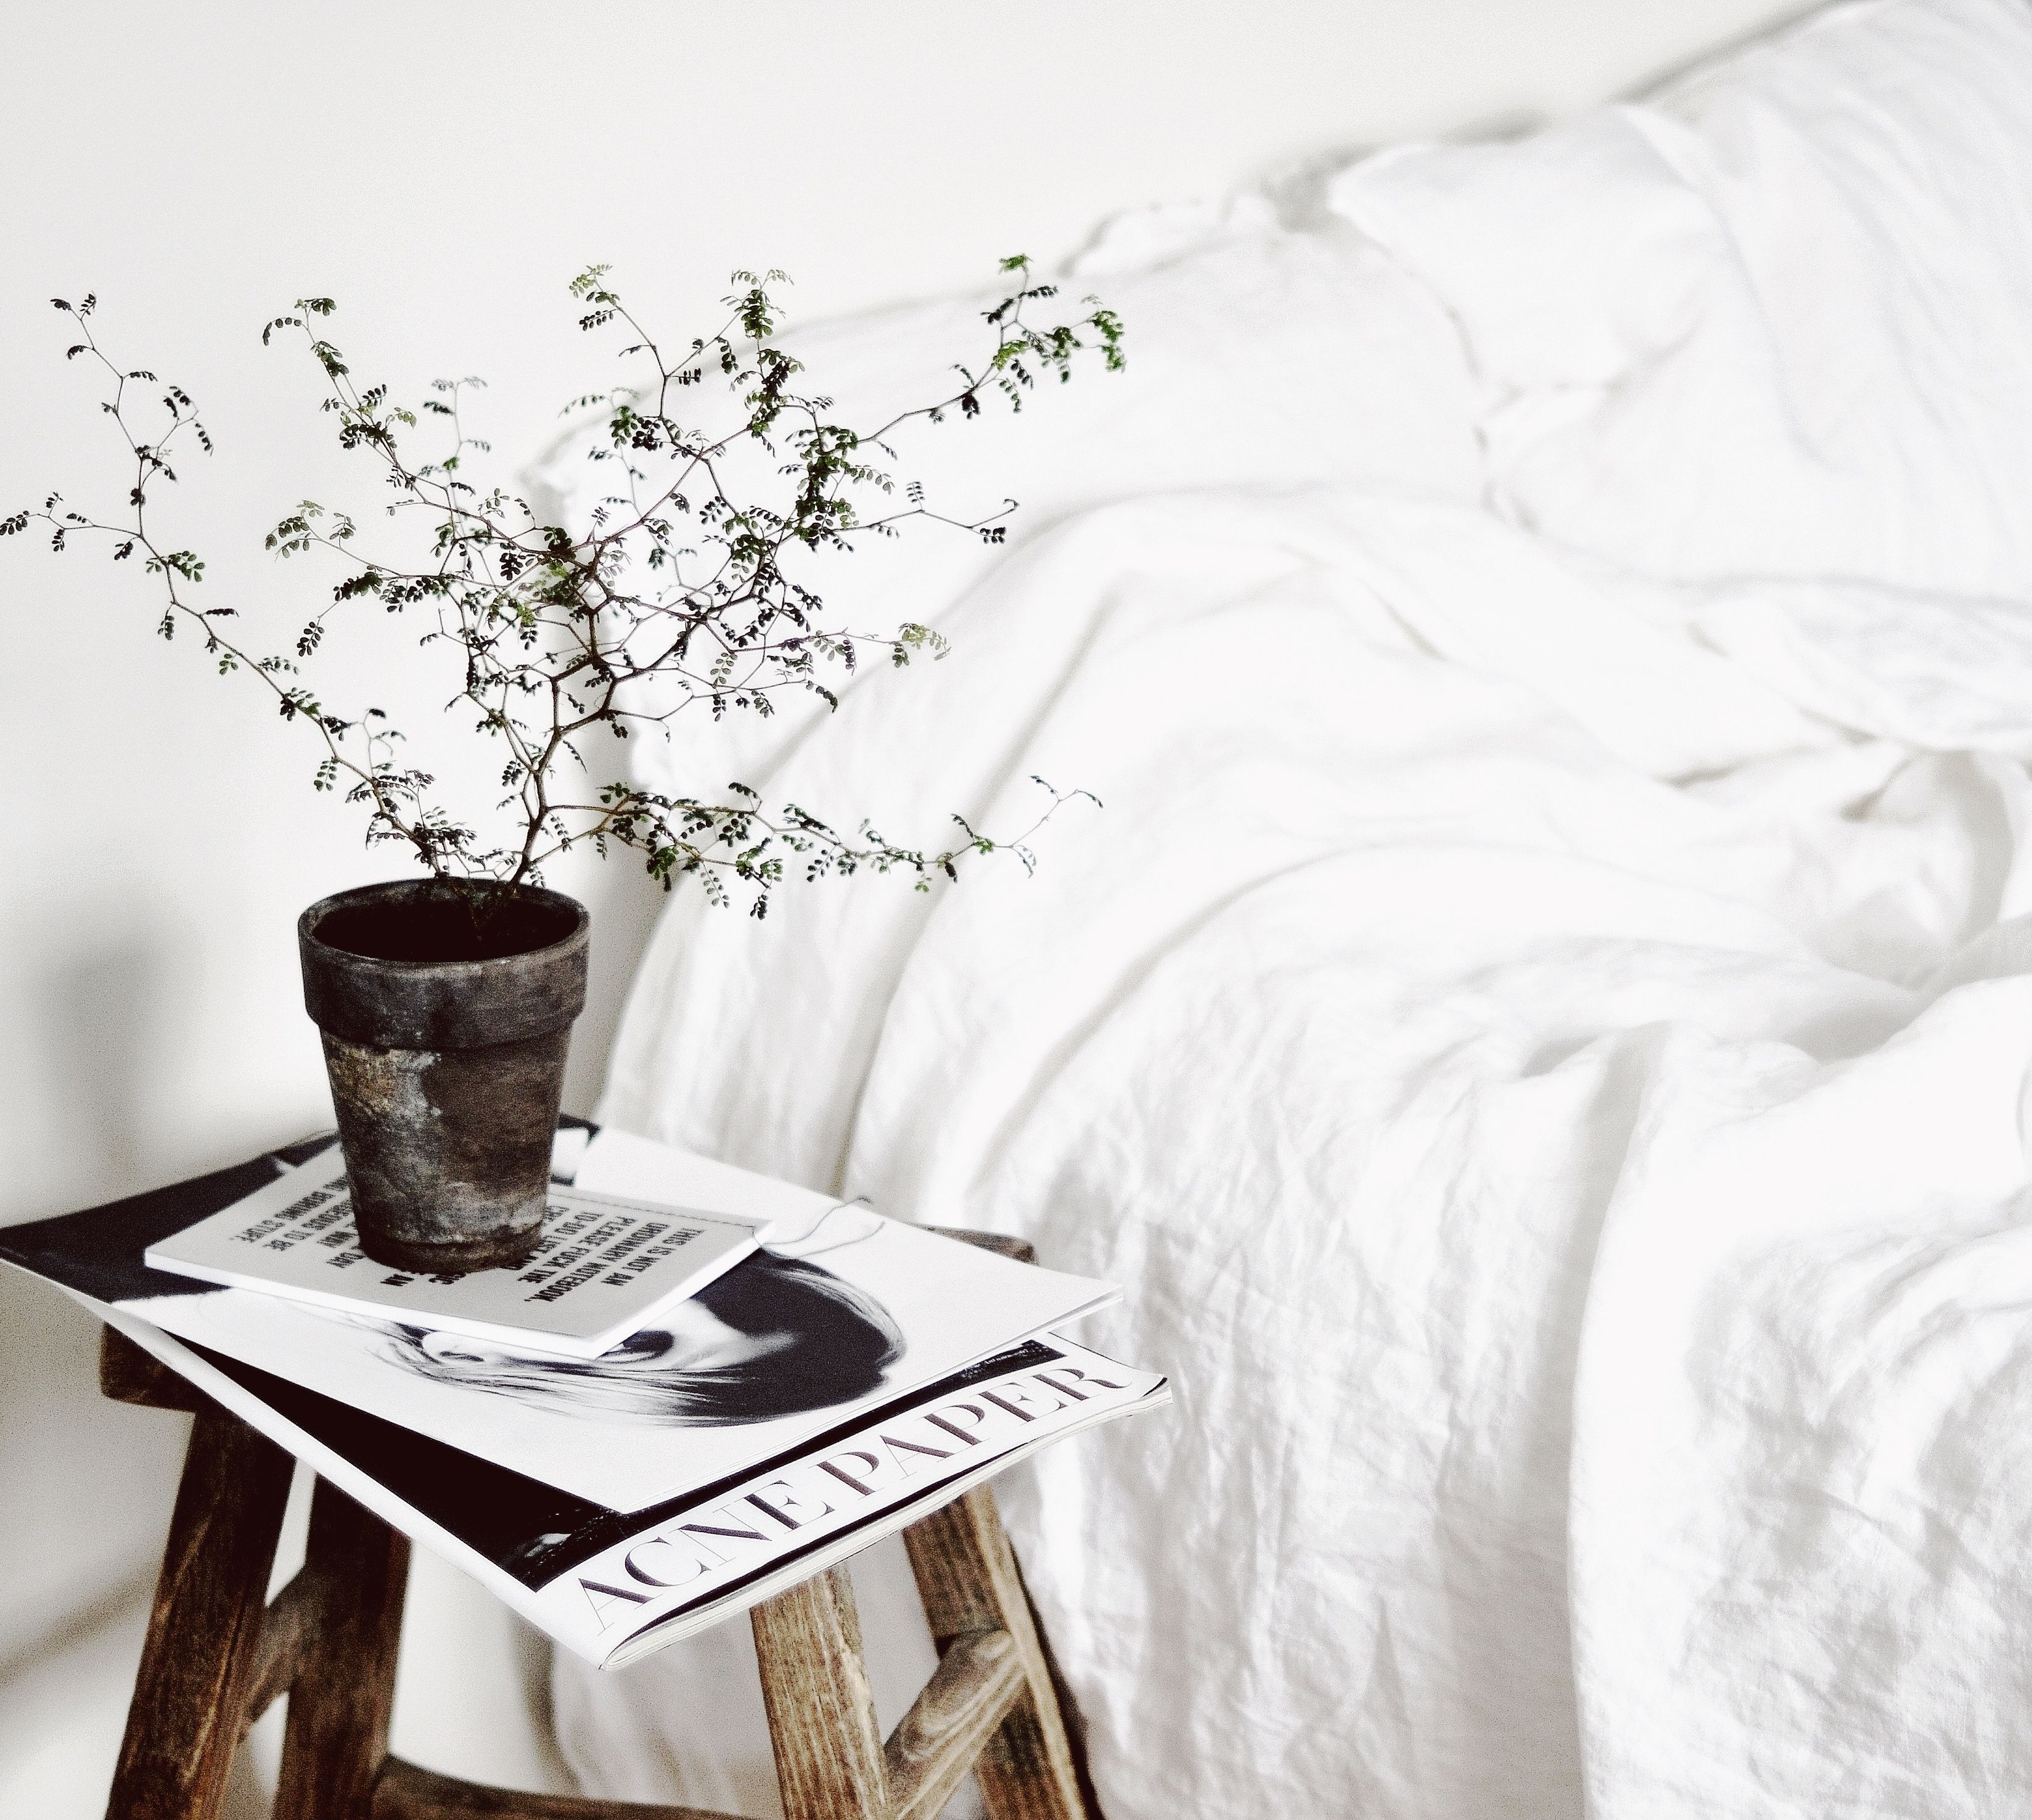 White Linen Bedding alongside organic, natural elements - true simplicity with a calming effect. By @whitelivingetc anettes2